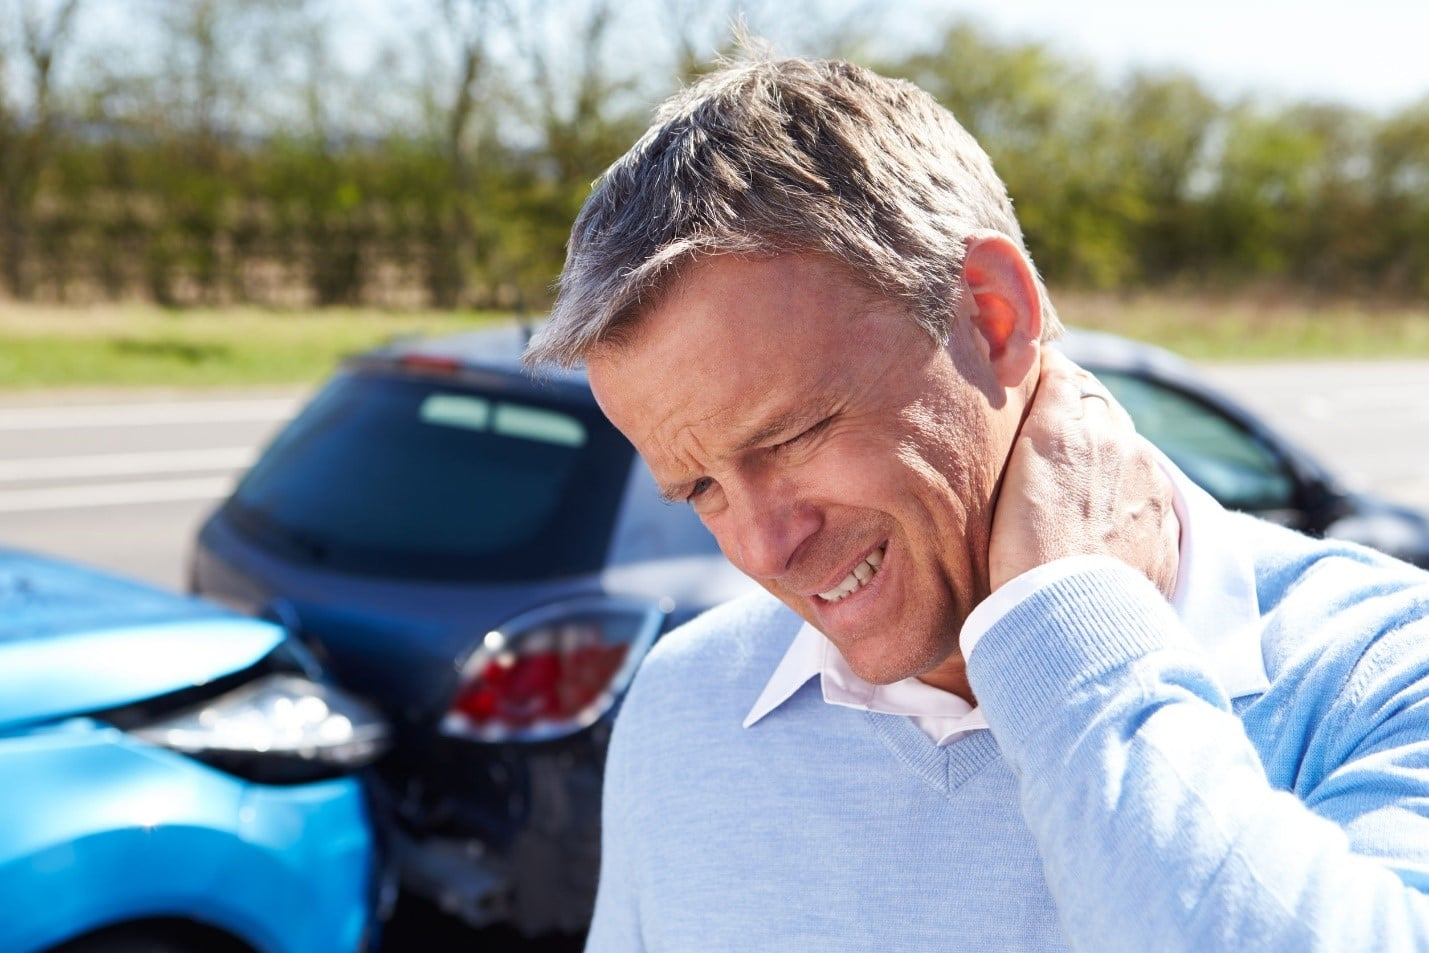 Types of Injury Lawsuits That Can Result from a Florida Car Crash